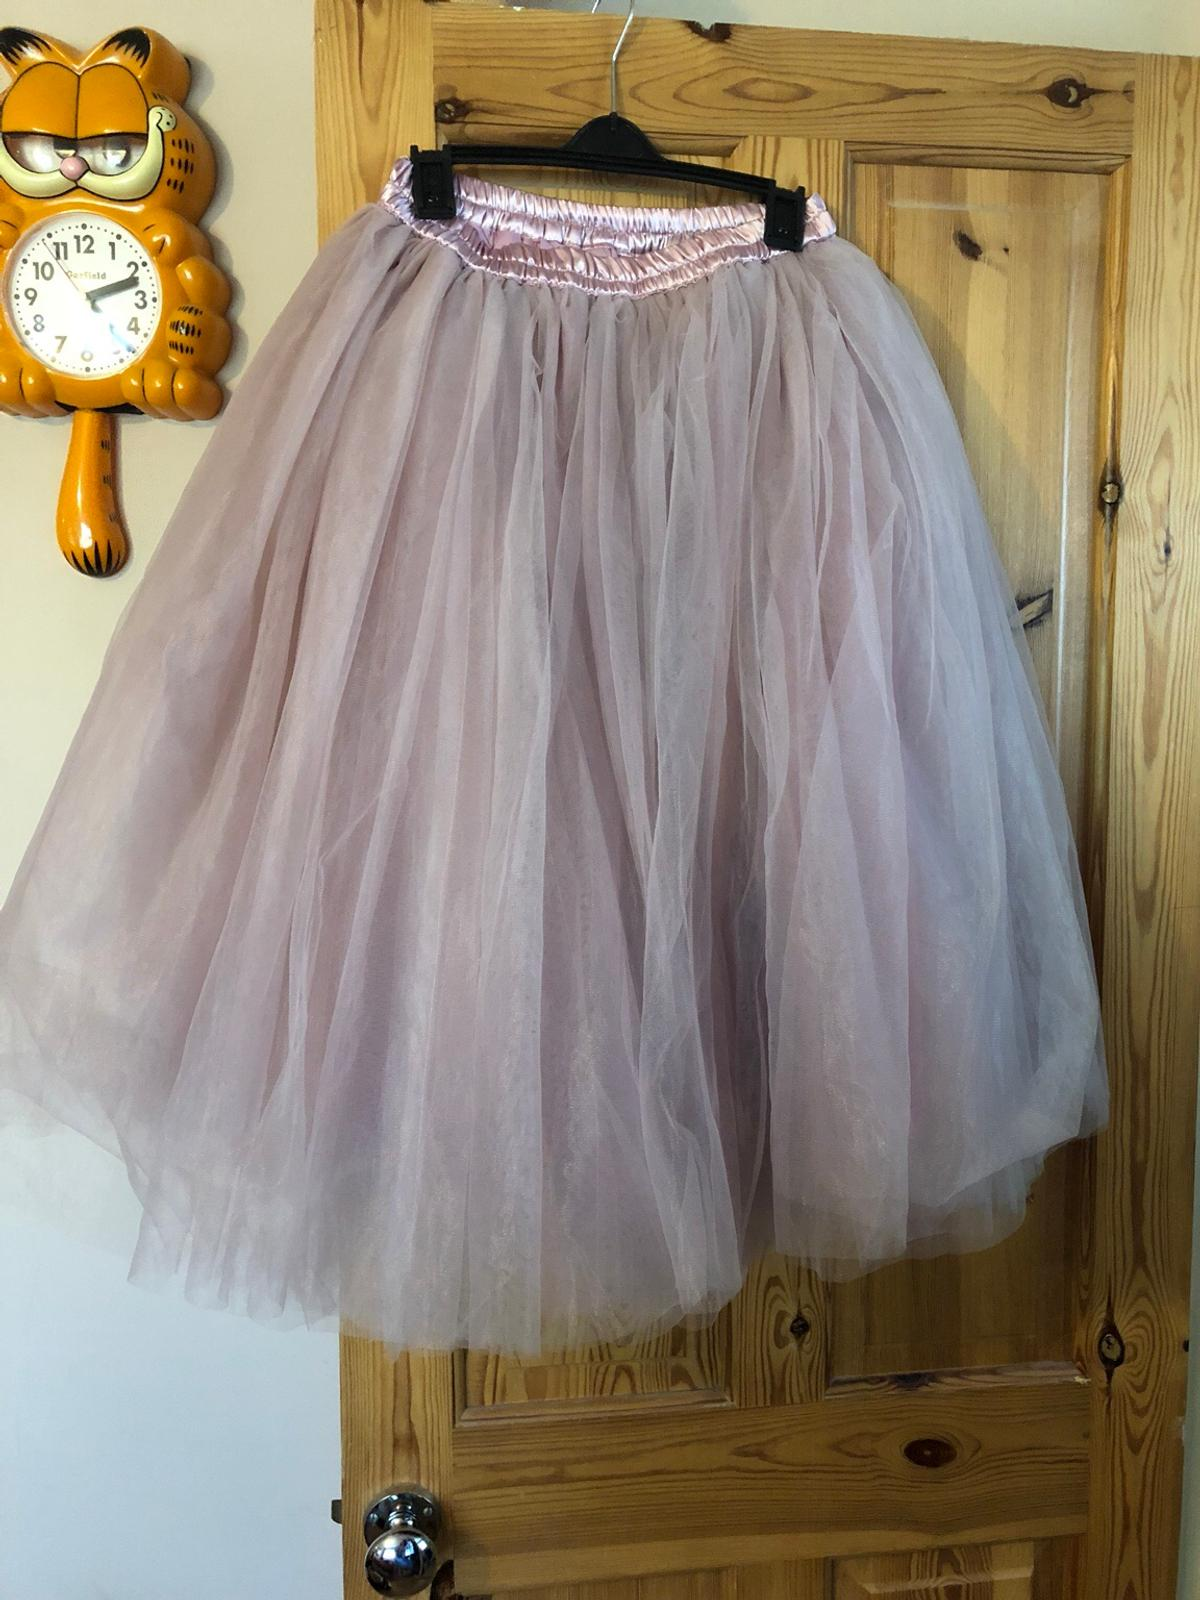 63bcd4f2275d99 Rose midi tulle tutu skirt size 10 BN in L25 Liverpool for £25.00 ...